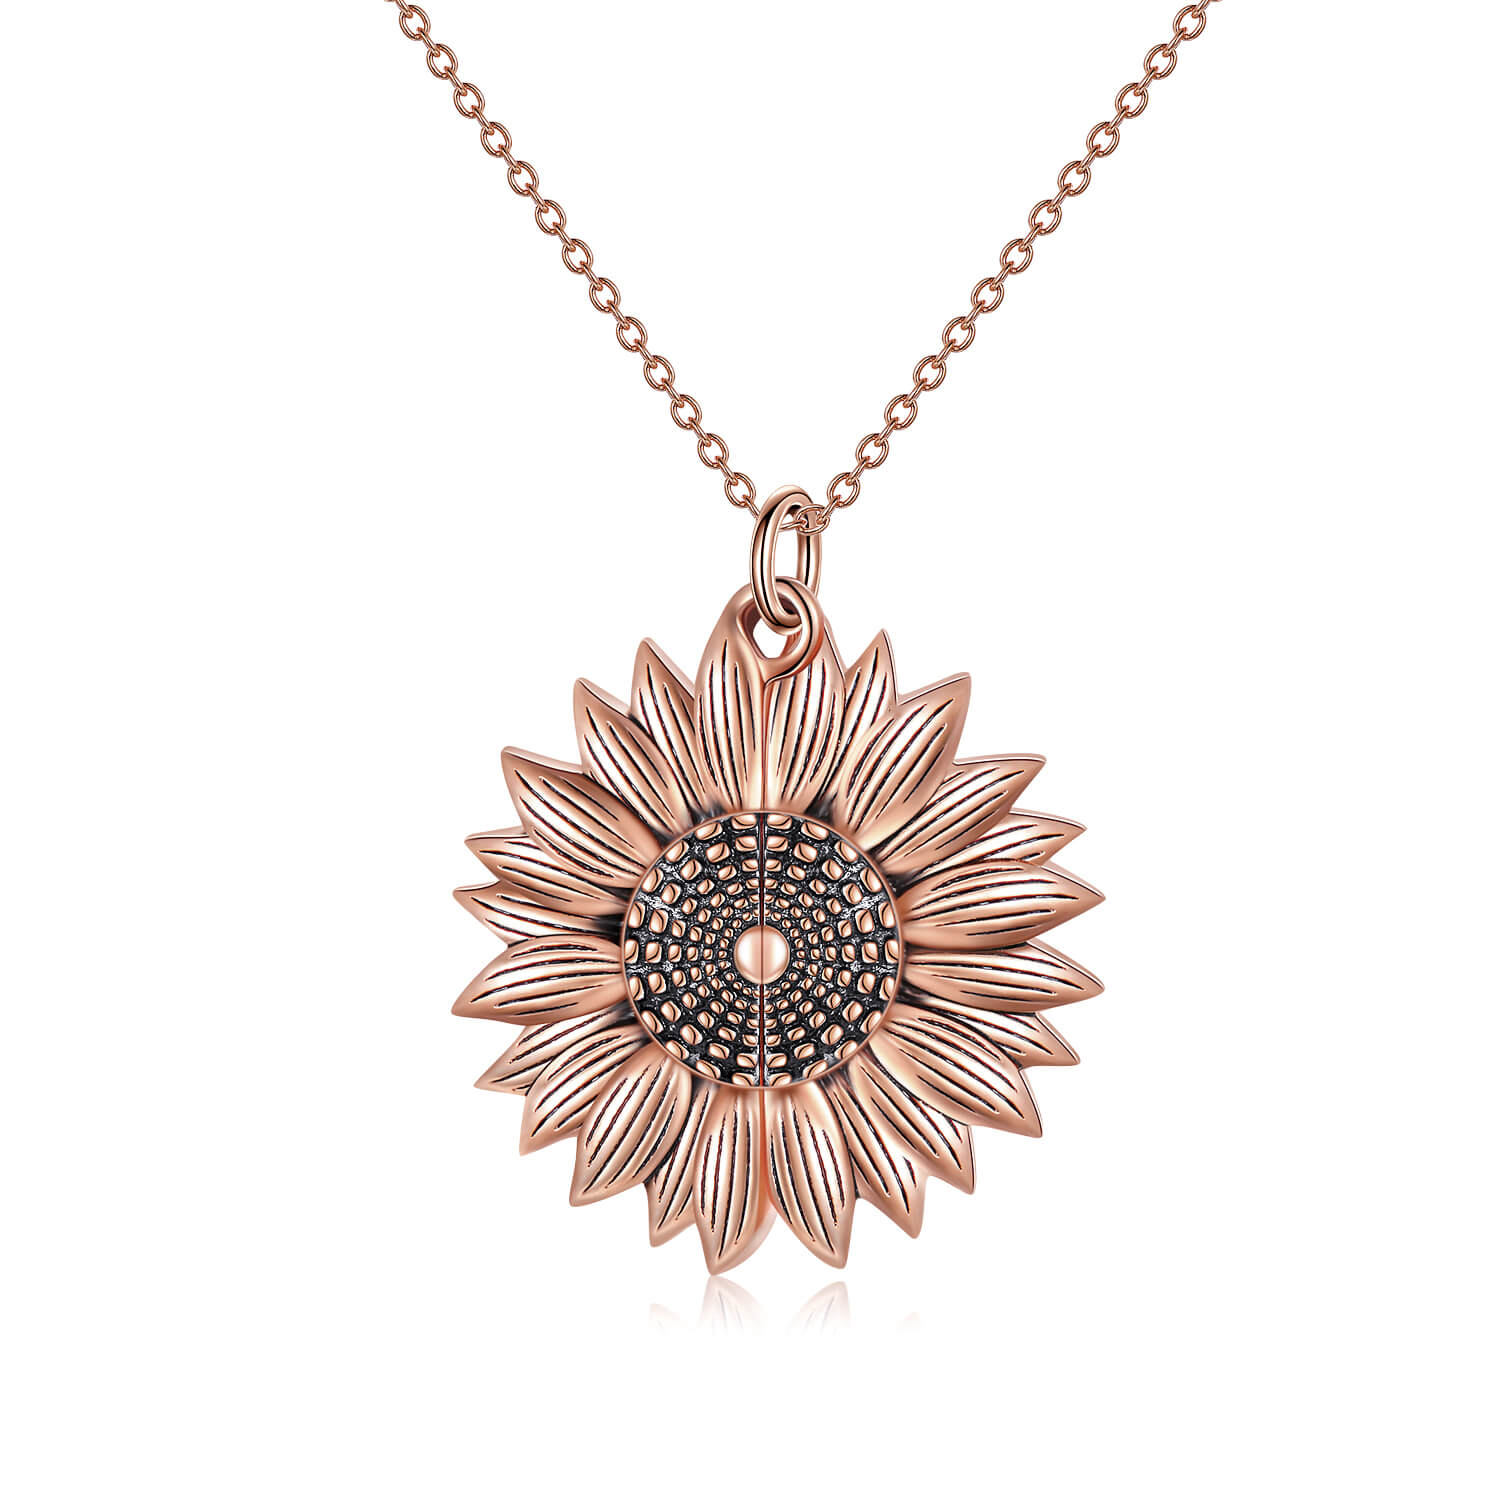 Sunflower Necklace : The perfect gift for women and girls, and includes a gift pouch.